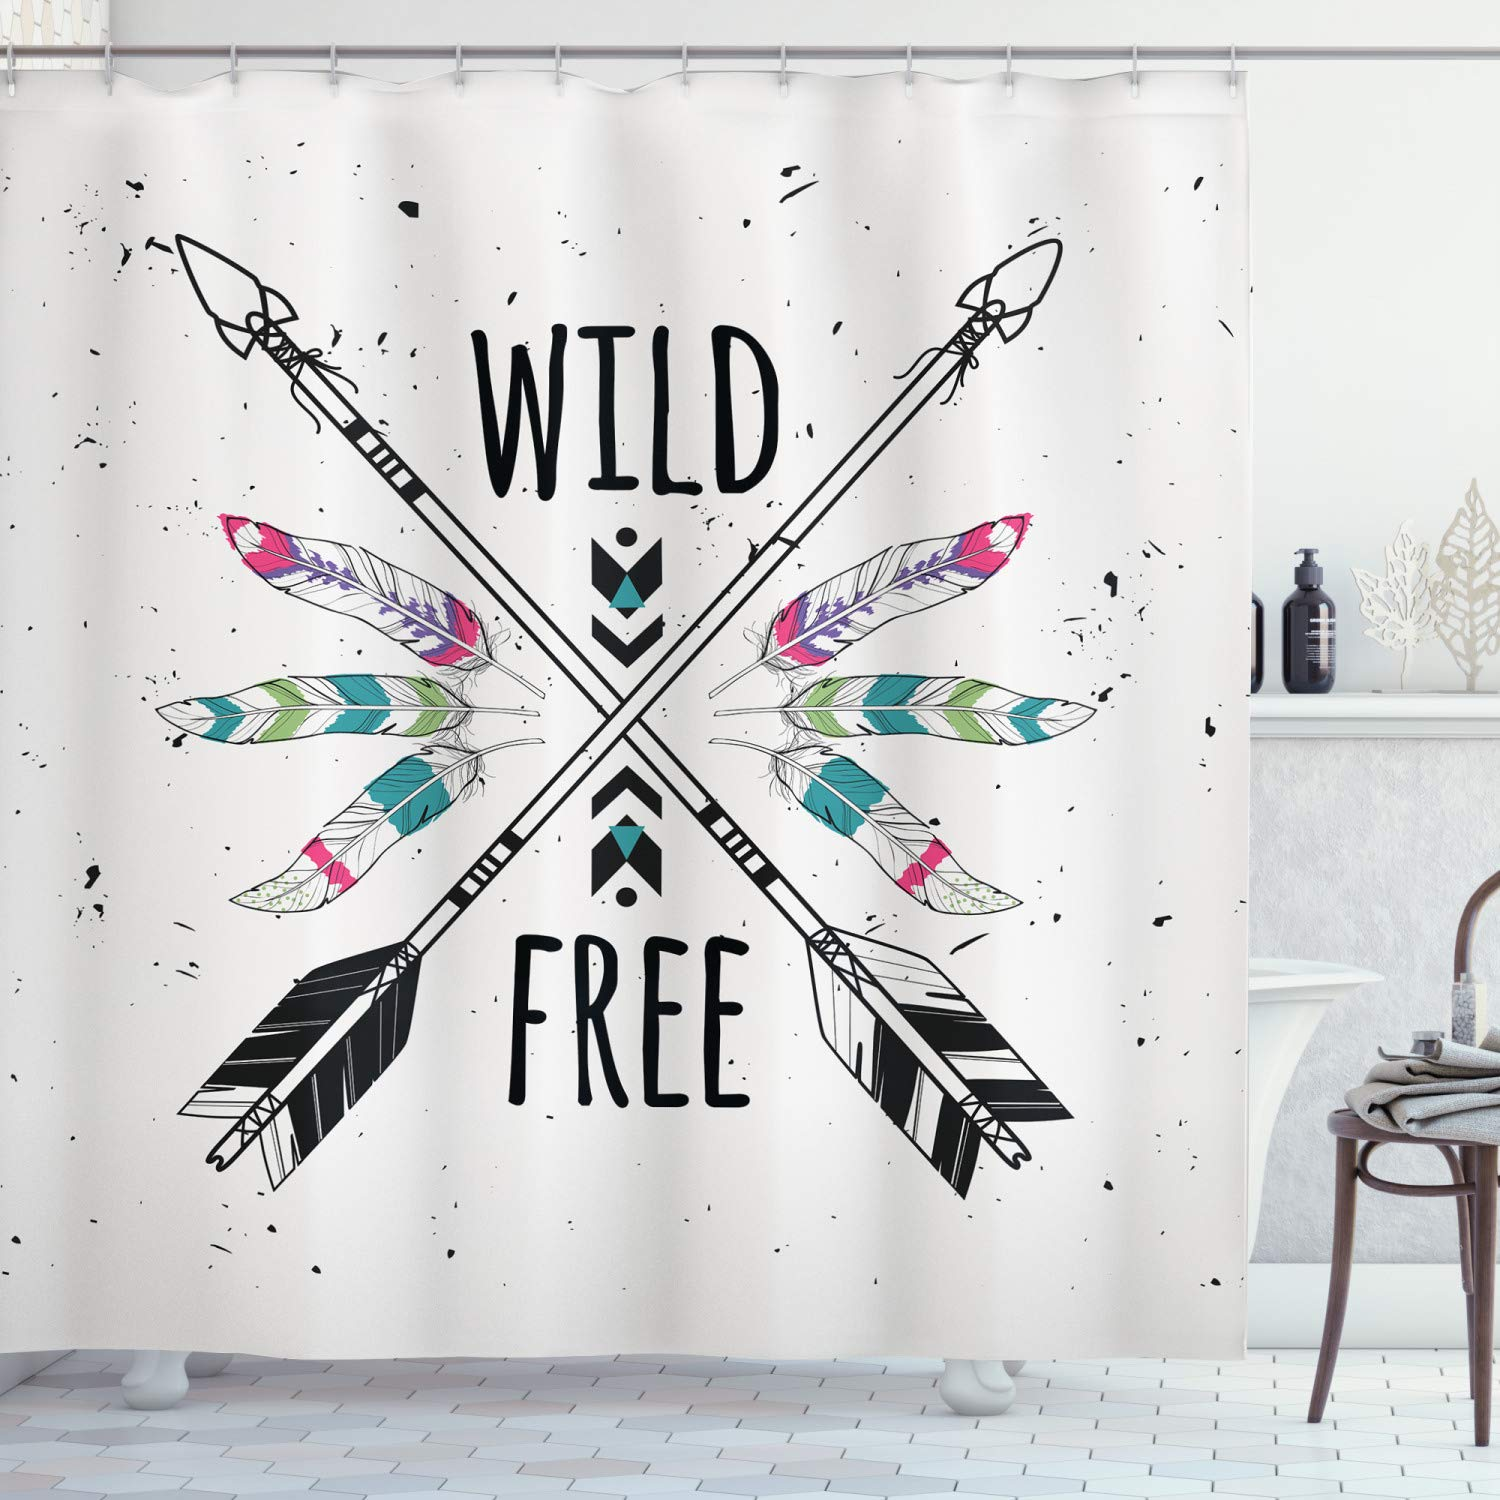 """Ambesonne Tribal Shower Curtain, Crossed Arrows with Wild and Free Motivation Words Primitive Illustration, Cloth Fabric Bathroom Decor Set with Hooks, 75"""" Long, Black Teal"""